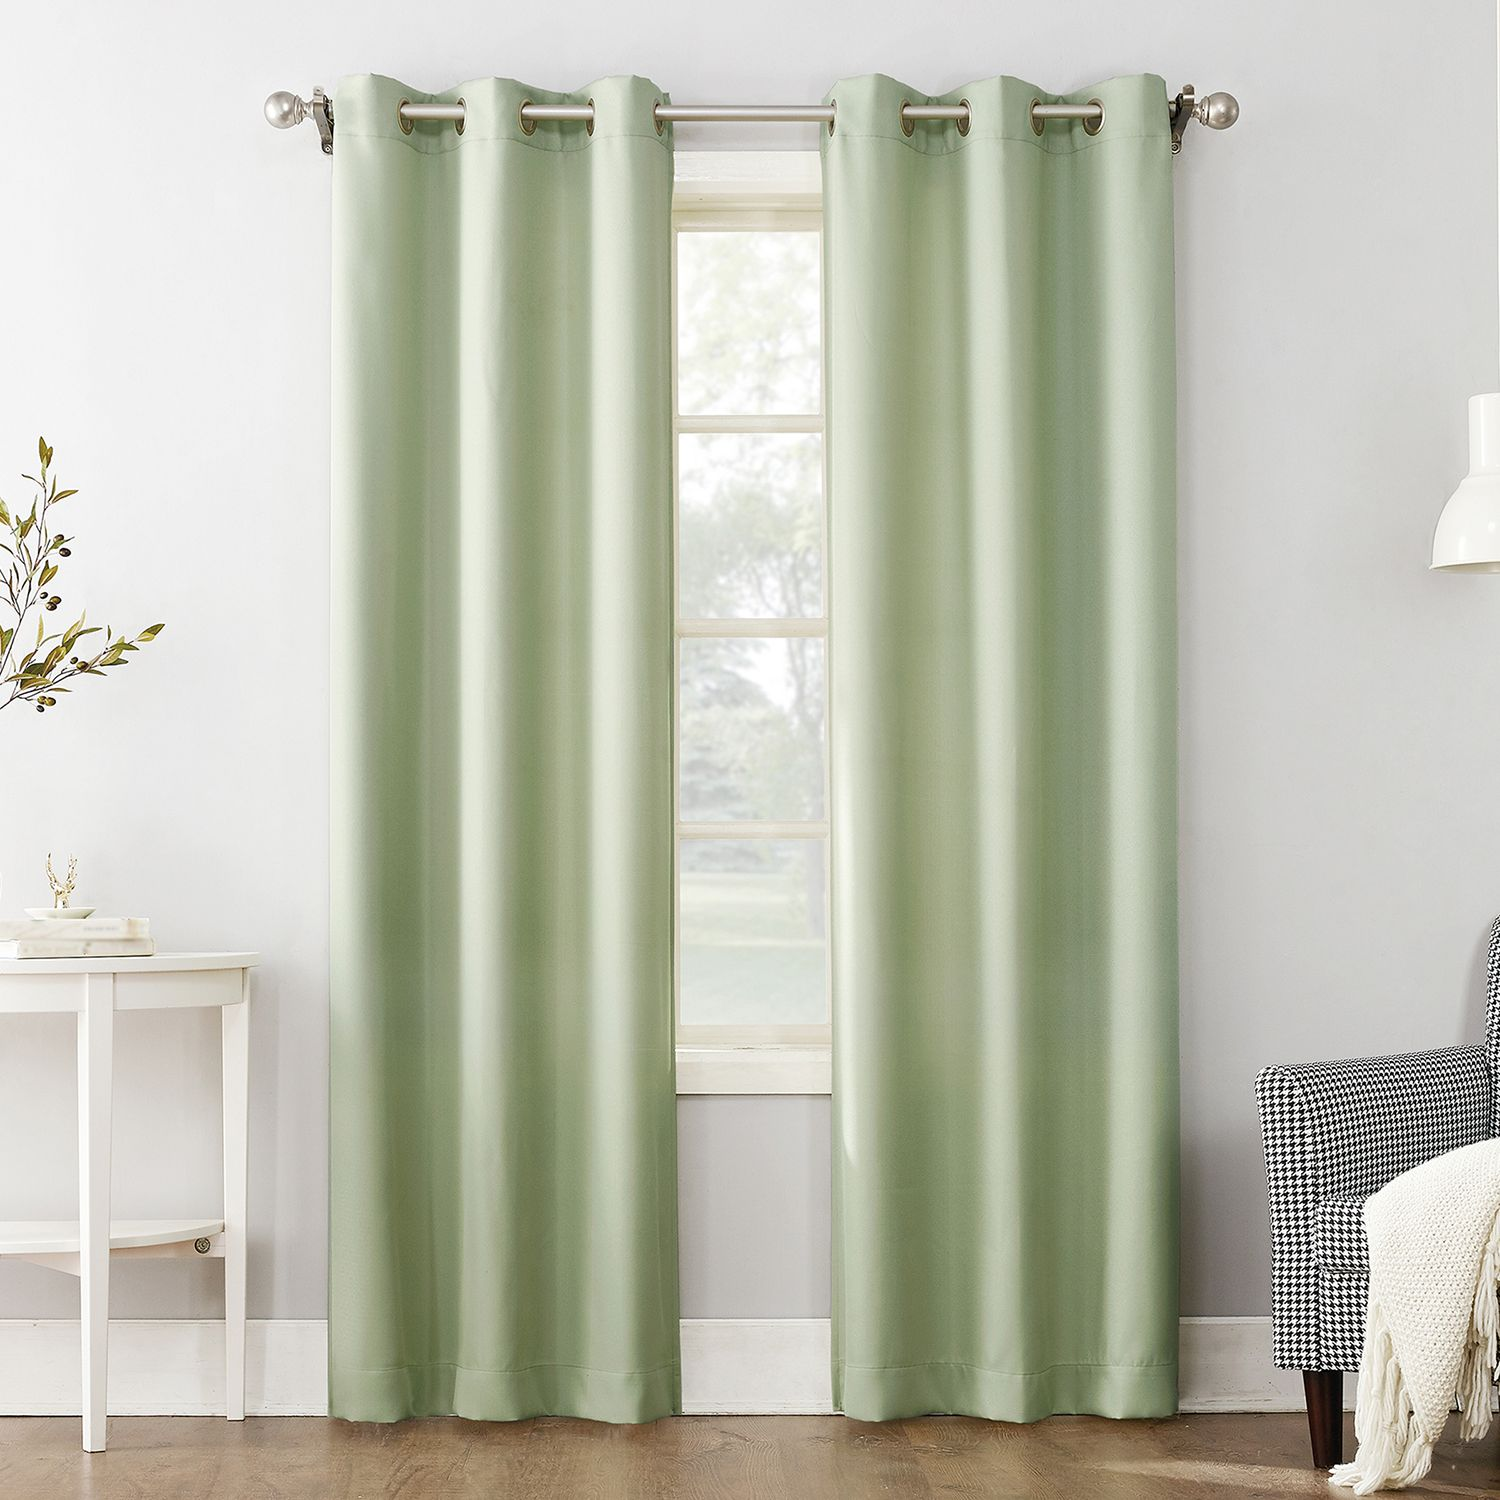 The Big One® Decorative 2 Pack Solid Window Curtains